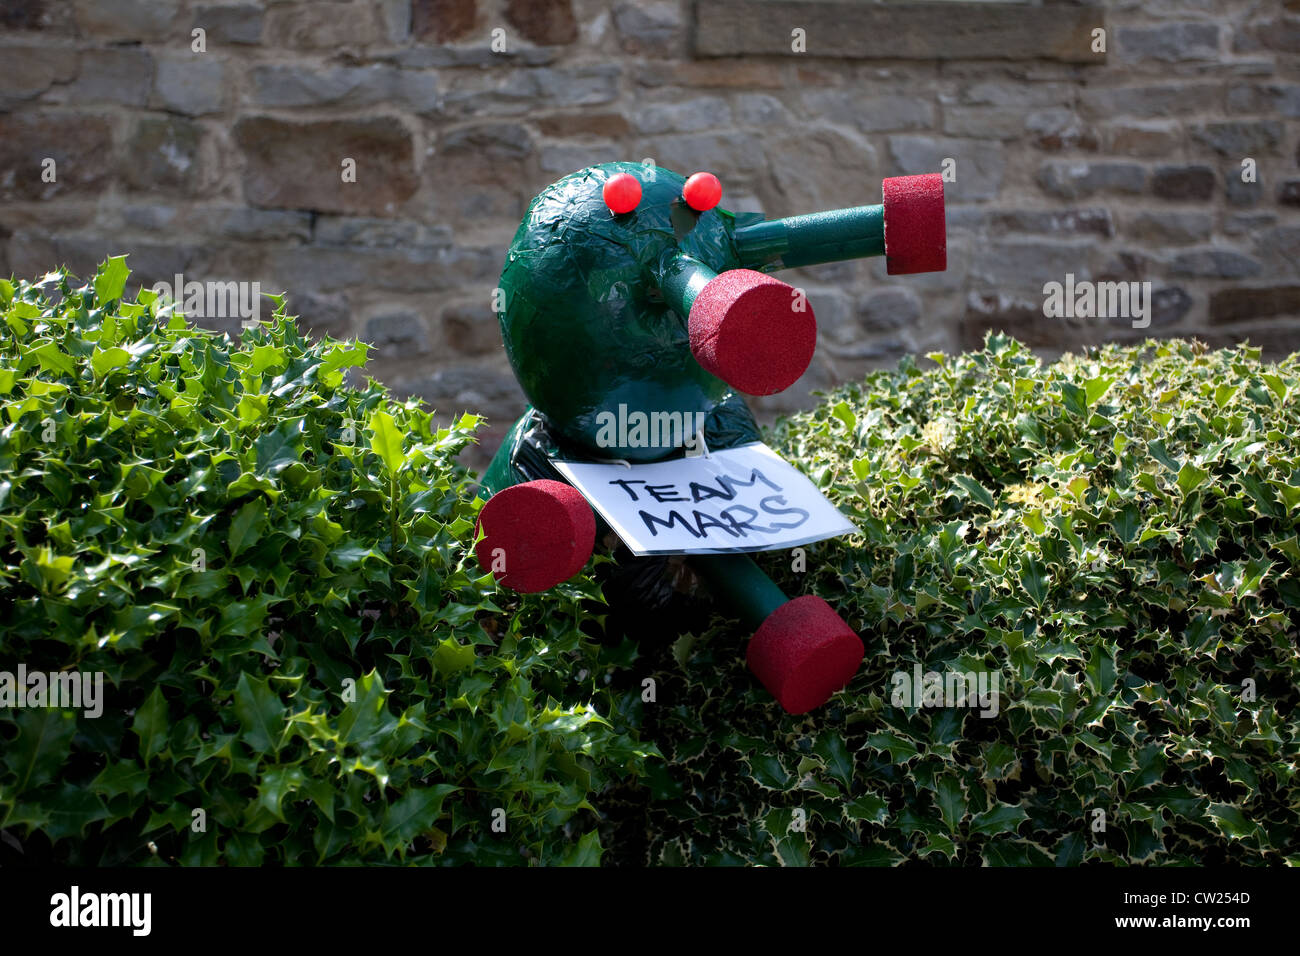 Green Martian Man from Mars art at the 2012 Kettlewell annual Scarecrow festival, Upper Wharfdale, North Yorkshire, - Stock Image